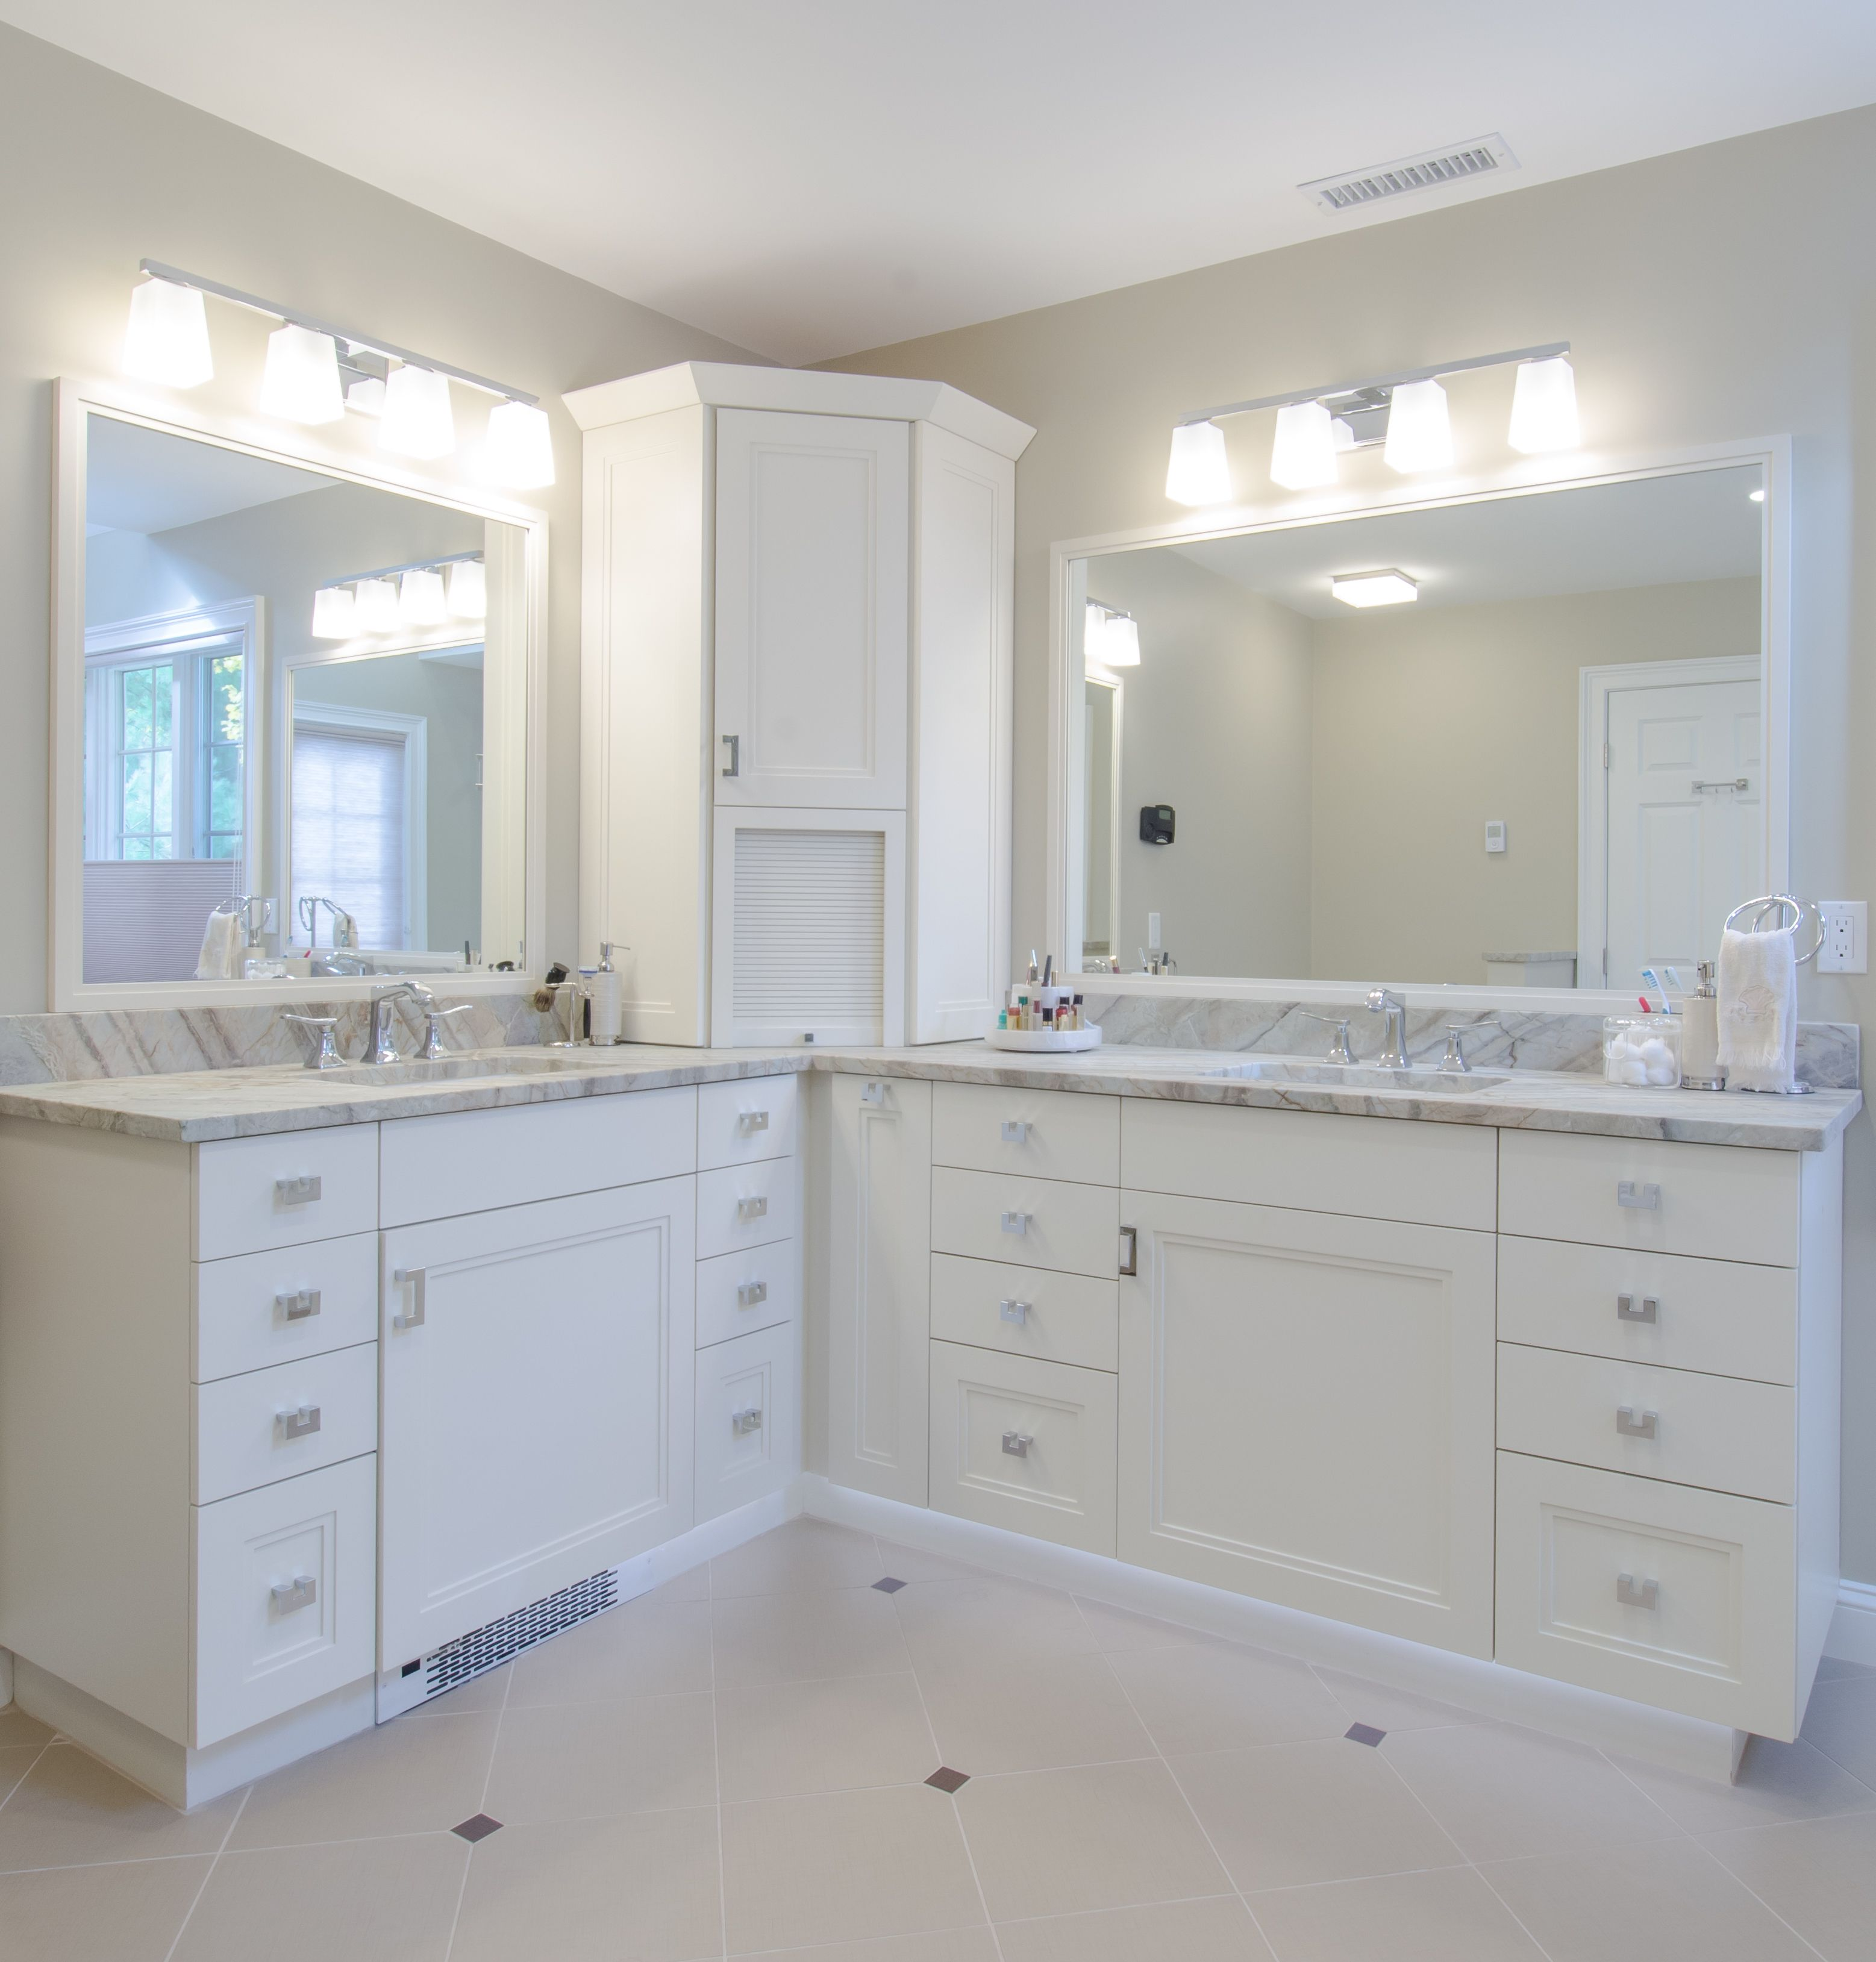 White Bathroom corner vanity with his and her sinks lots of